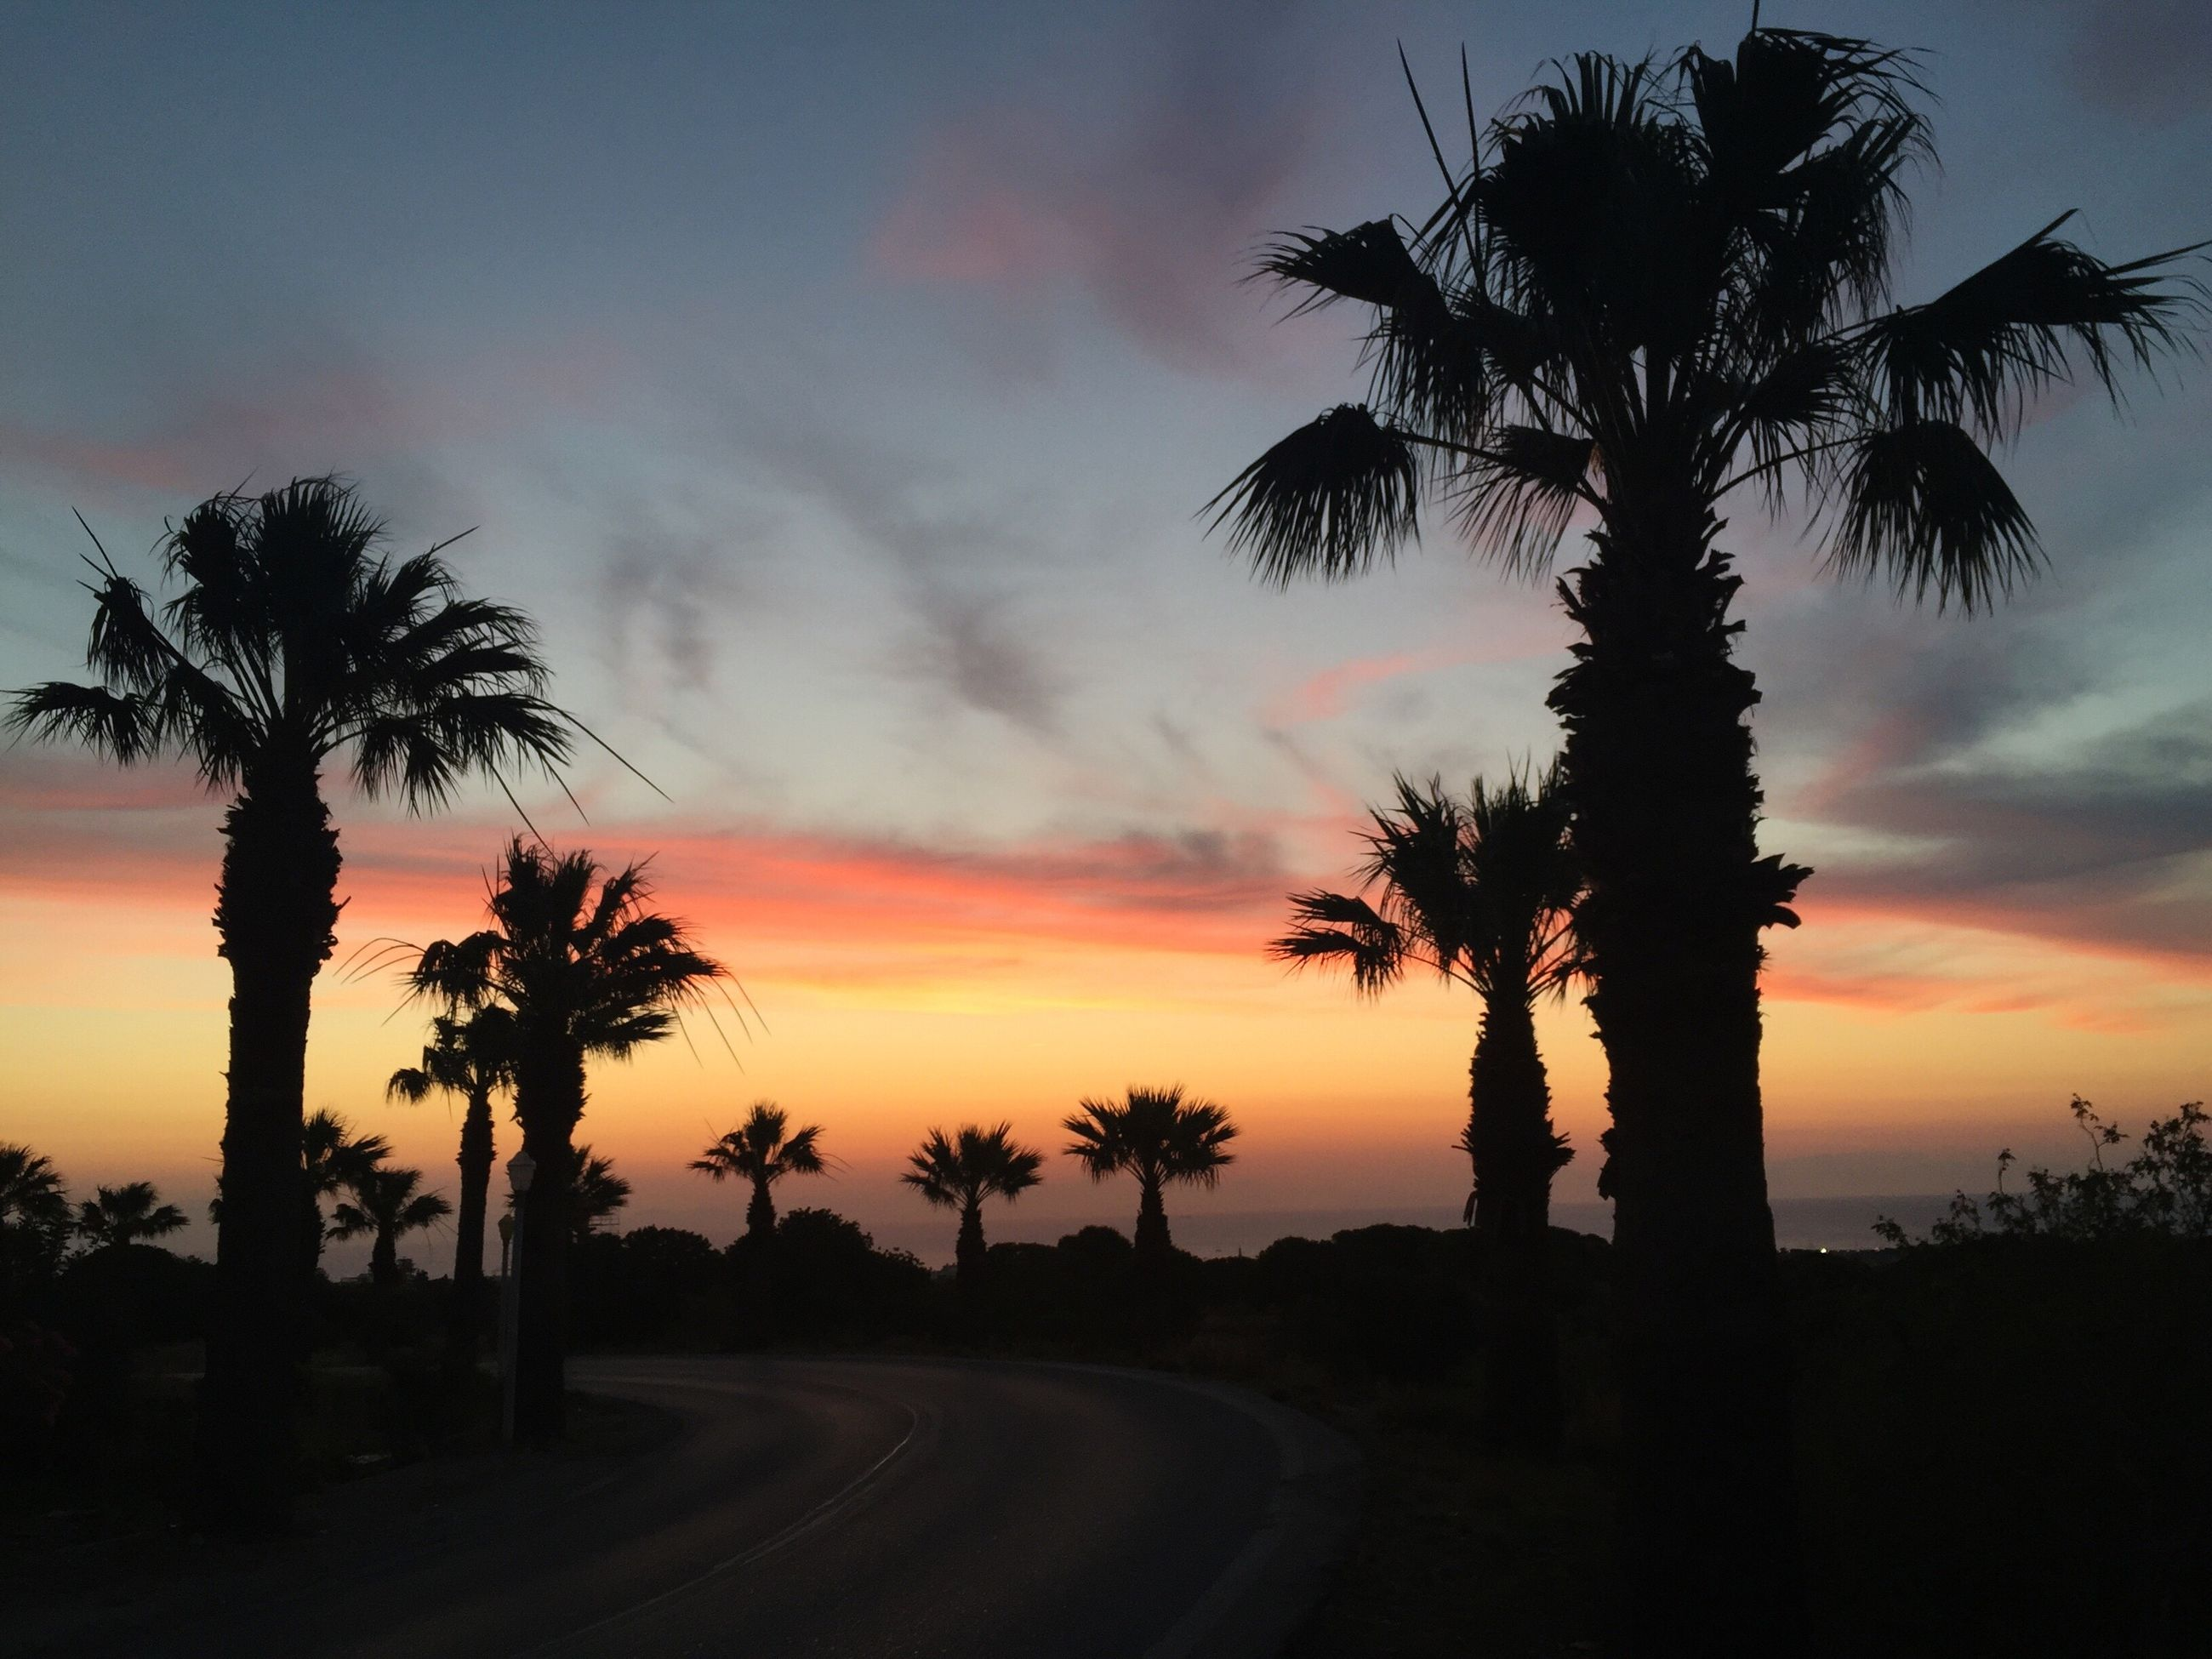 tree, sunset, palm tree, silhouette, sky, no people, scenics, tranquil scene, beauty in nature, cloud - sky, sea, tranquility, nature, outdoors, day